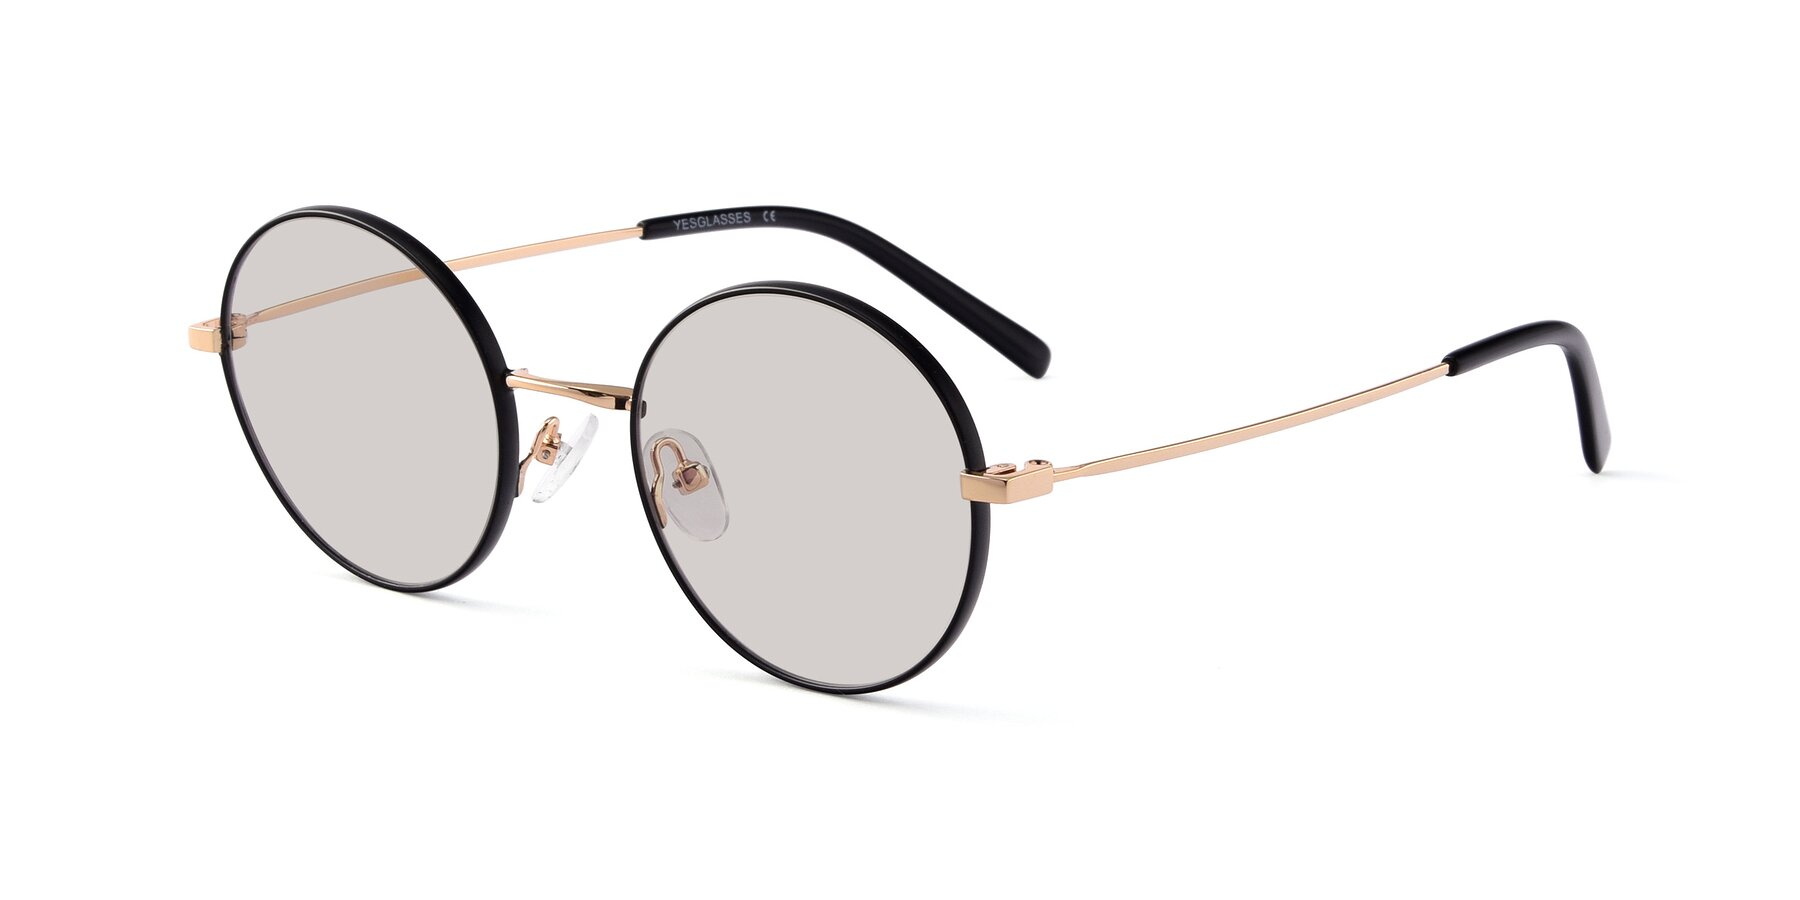 Angle of Moore in Black-Gold with Light Brown Tinted Lenses